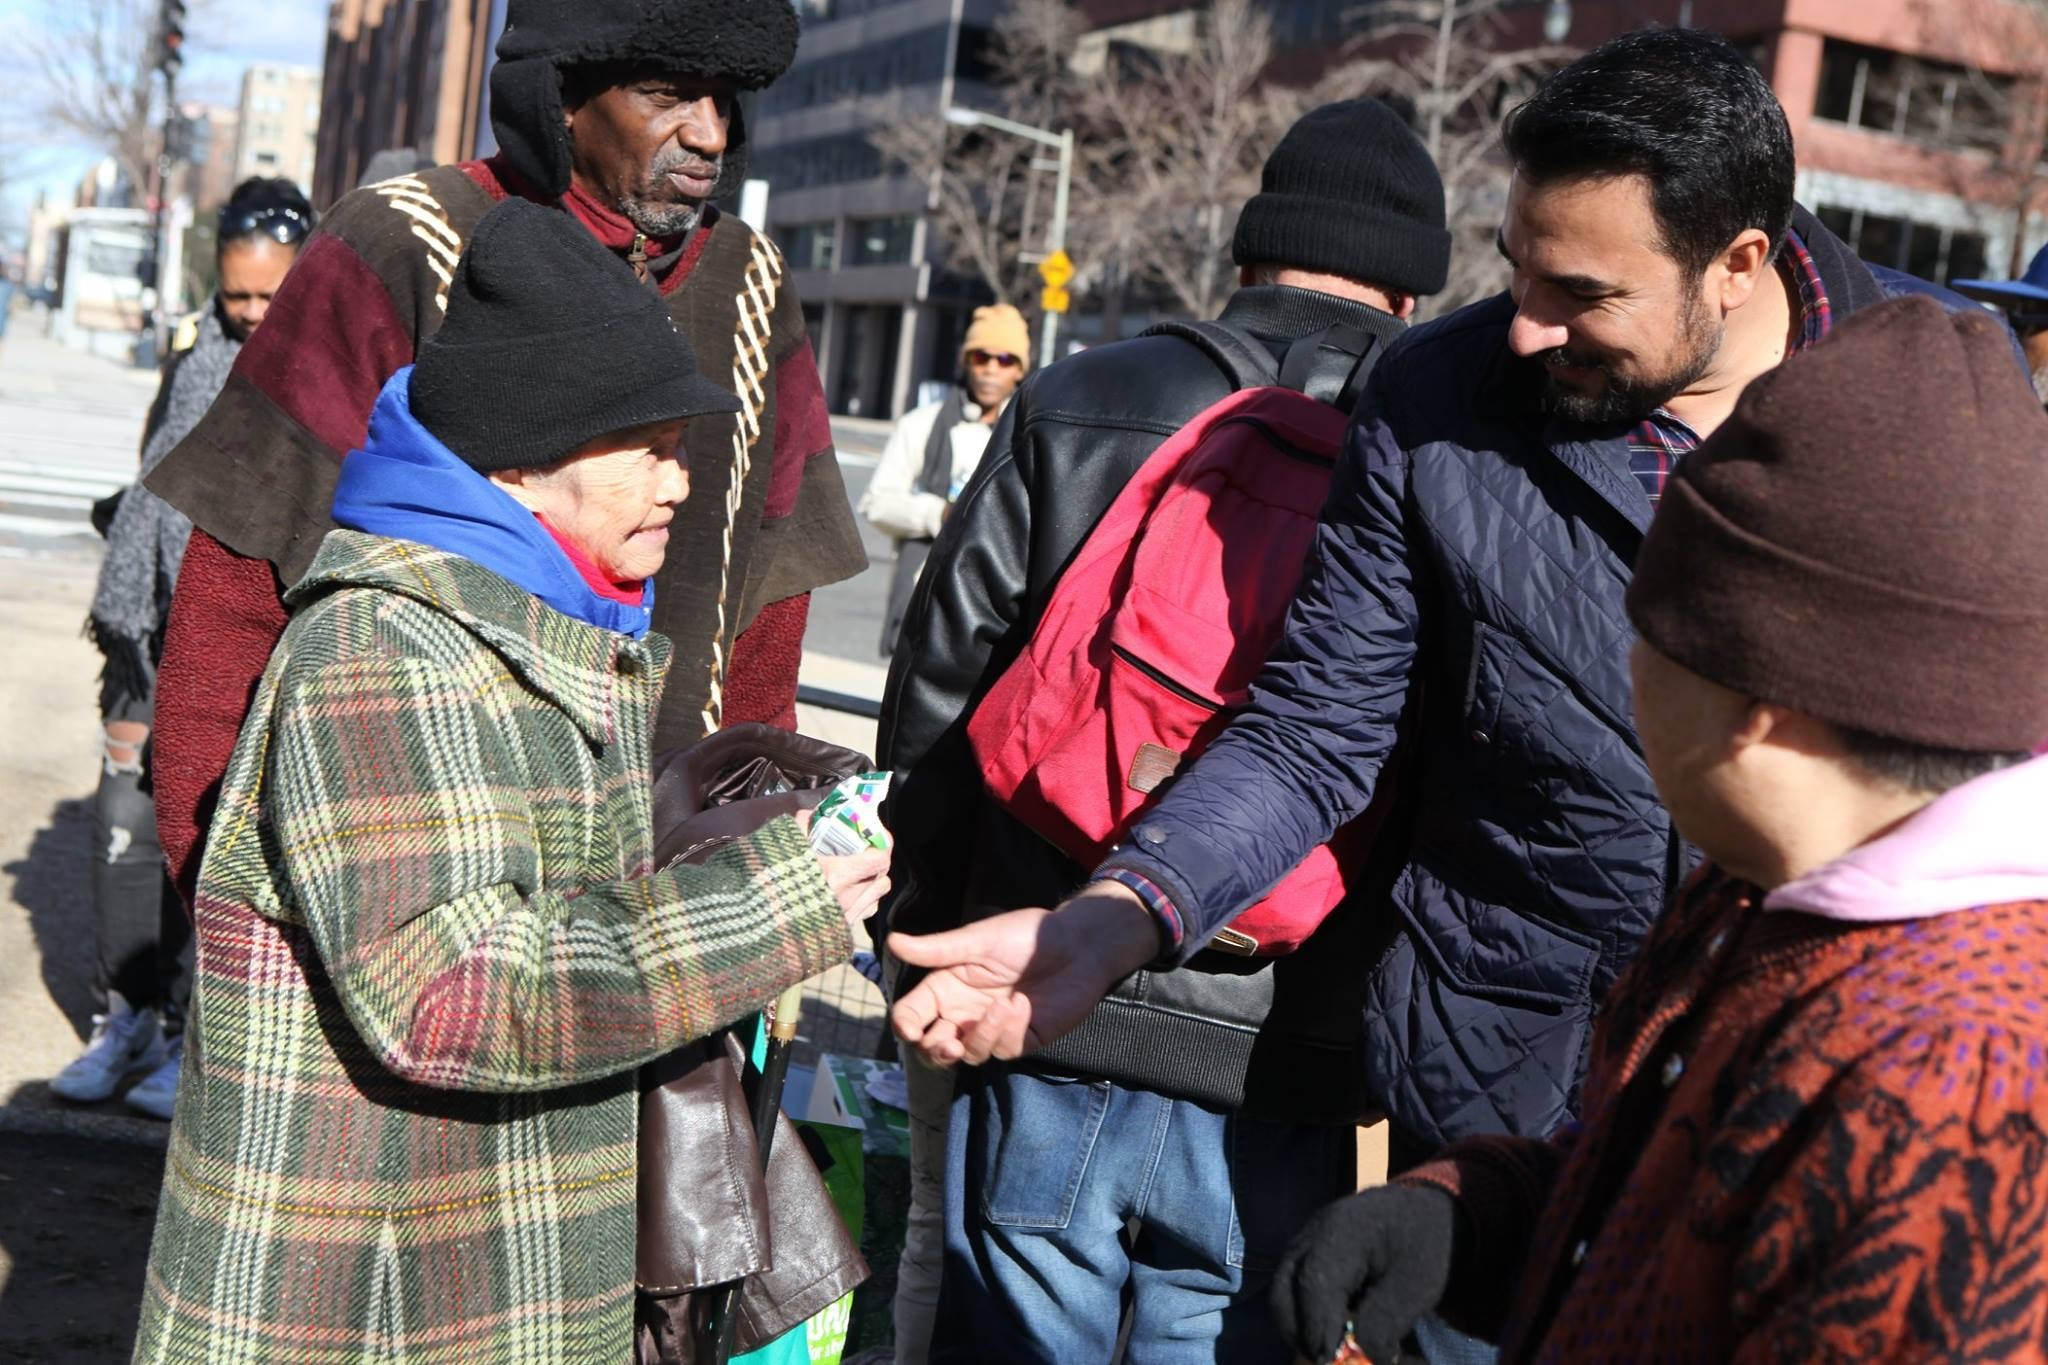 Kazi Mannan distributes food to the needy at a local food and coat drive -- one of many he organizes every year. (K.Mannan)